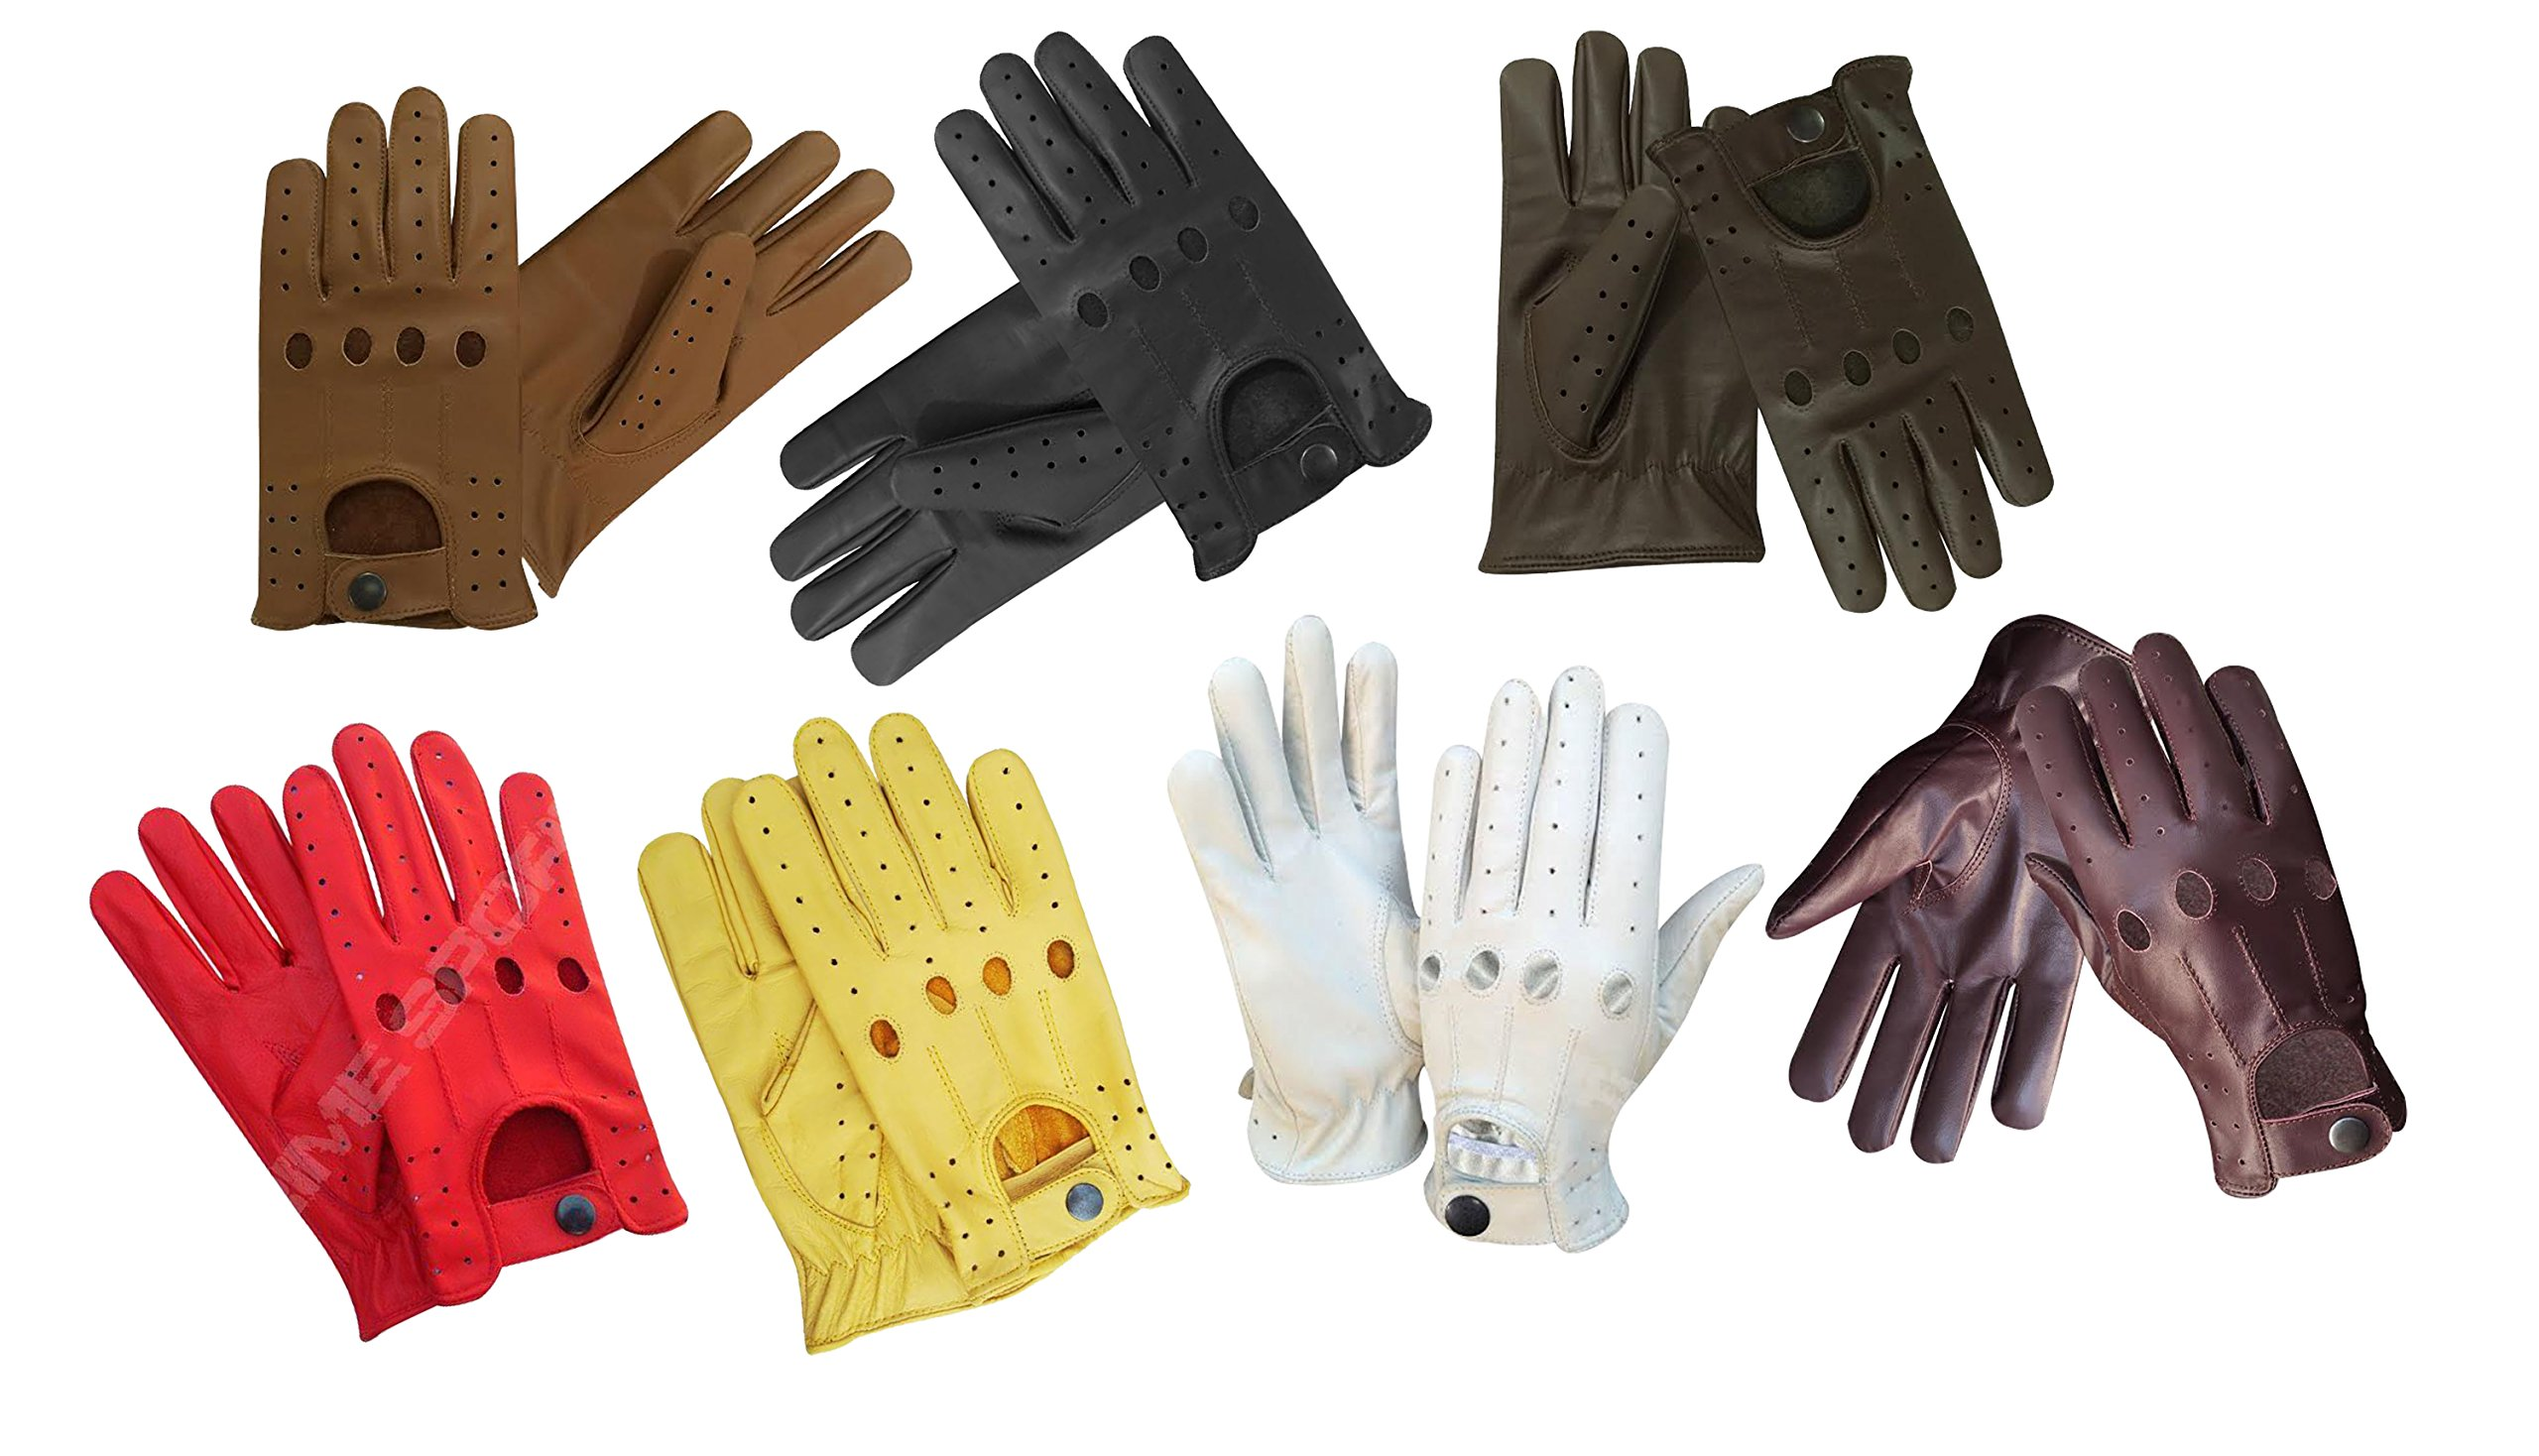 NEW Real Soft Leather Mens Top Quality Driving Gloves Stylish Fashion D-507 All (Black, Medium)